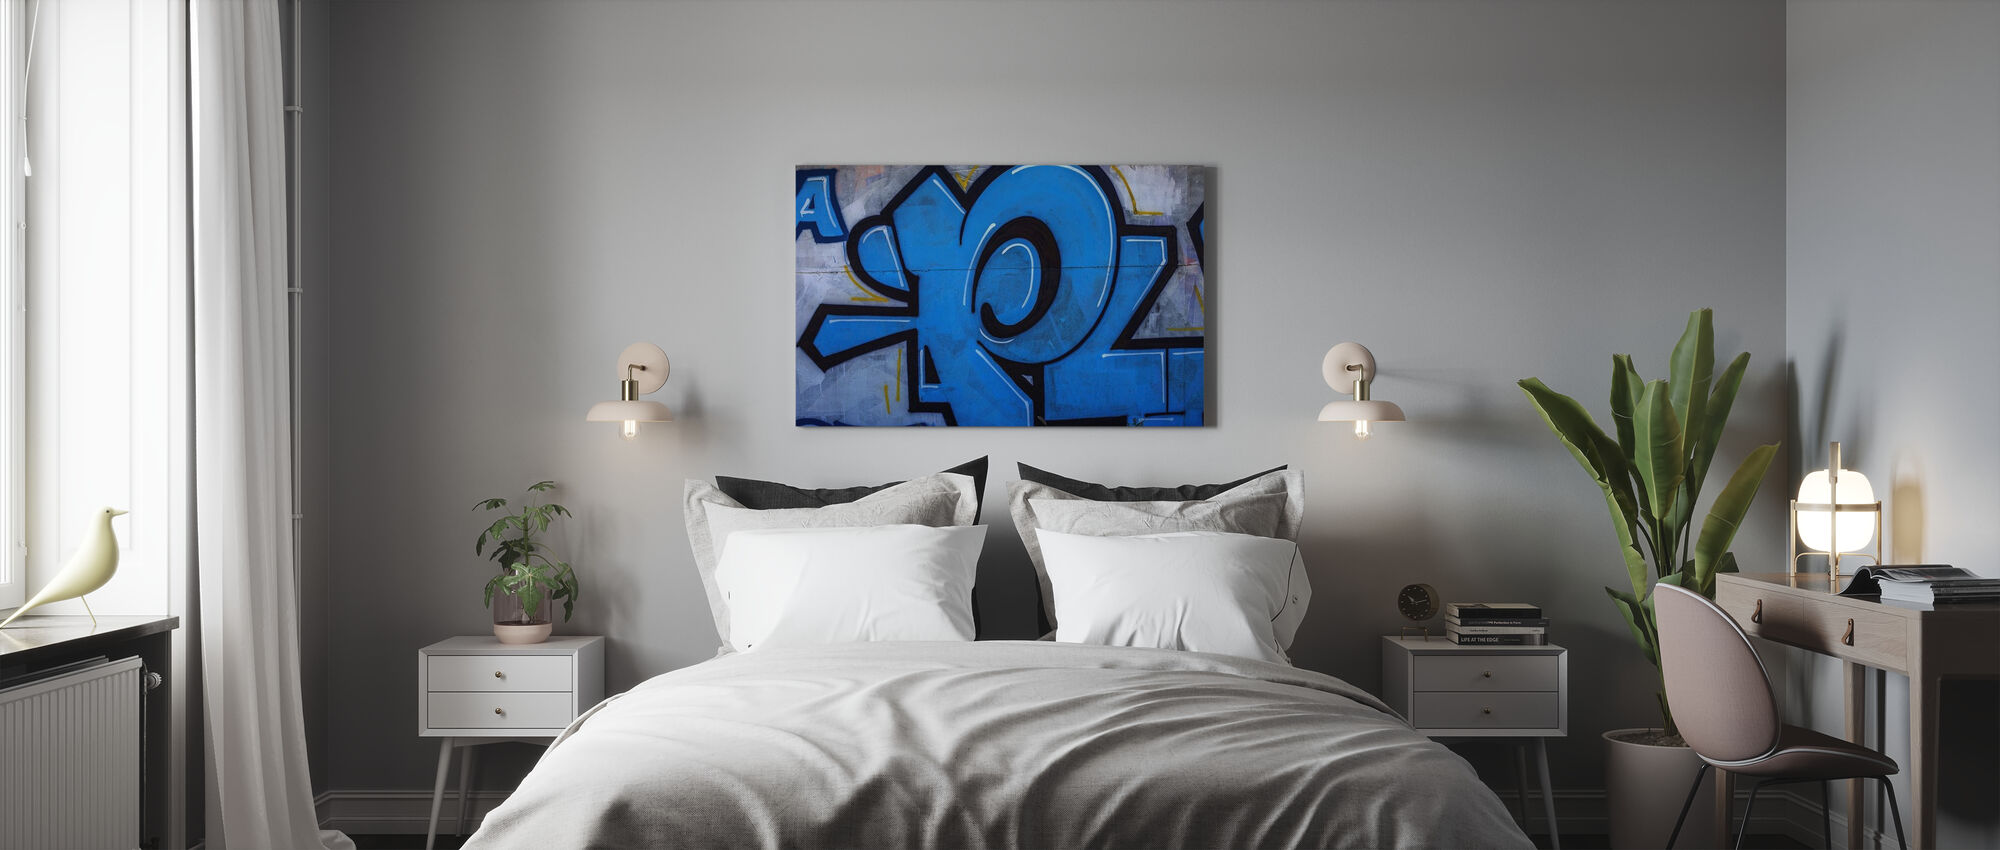 Blue Detail from Graffiti Wall - Canvas print - Bedroom